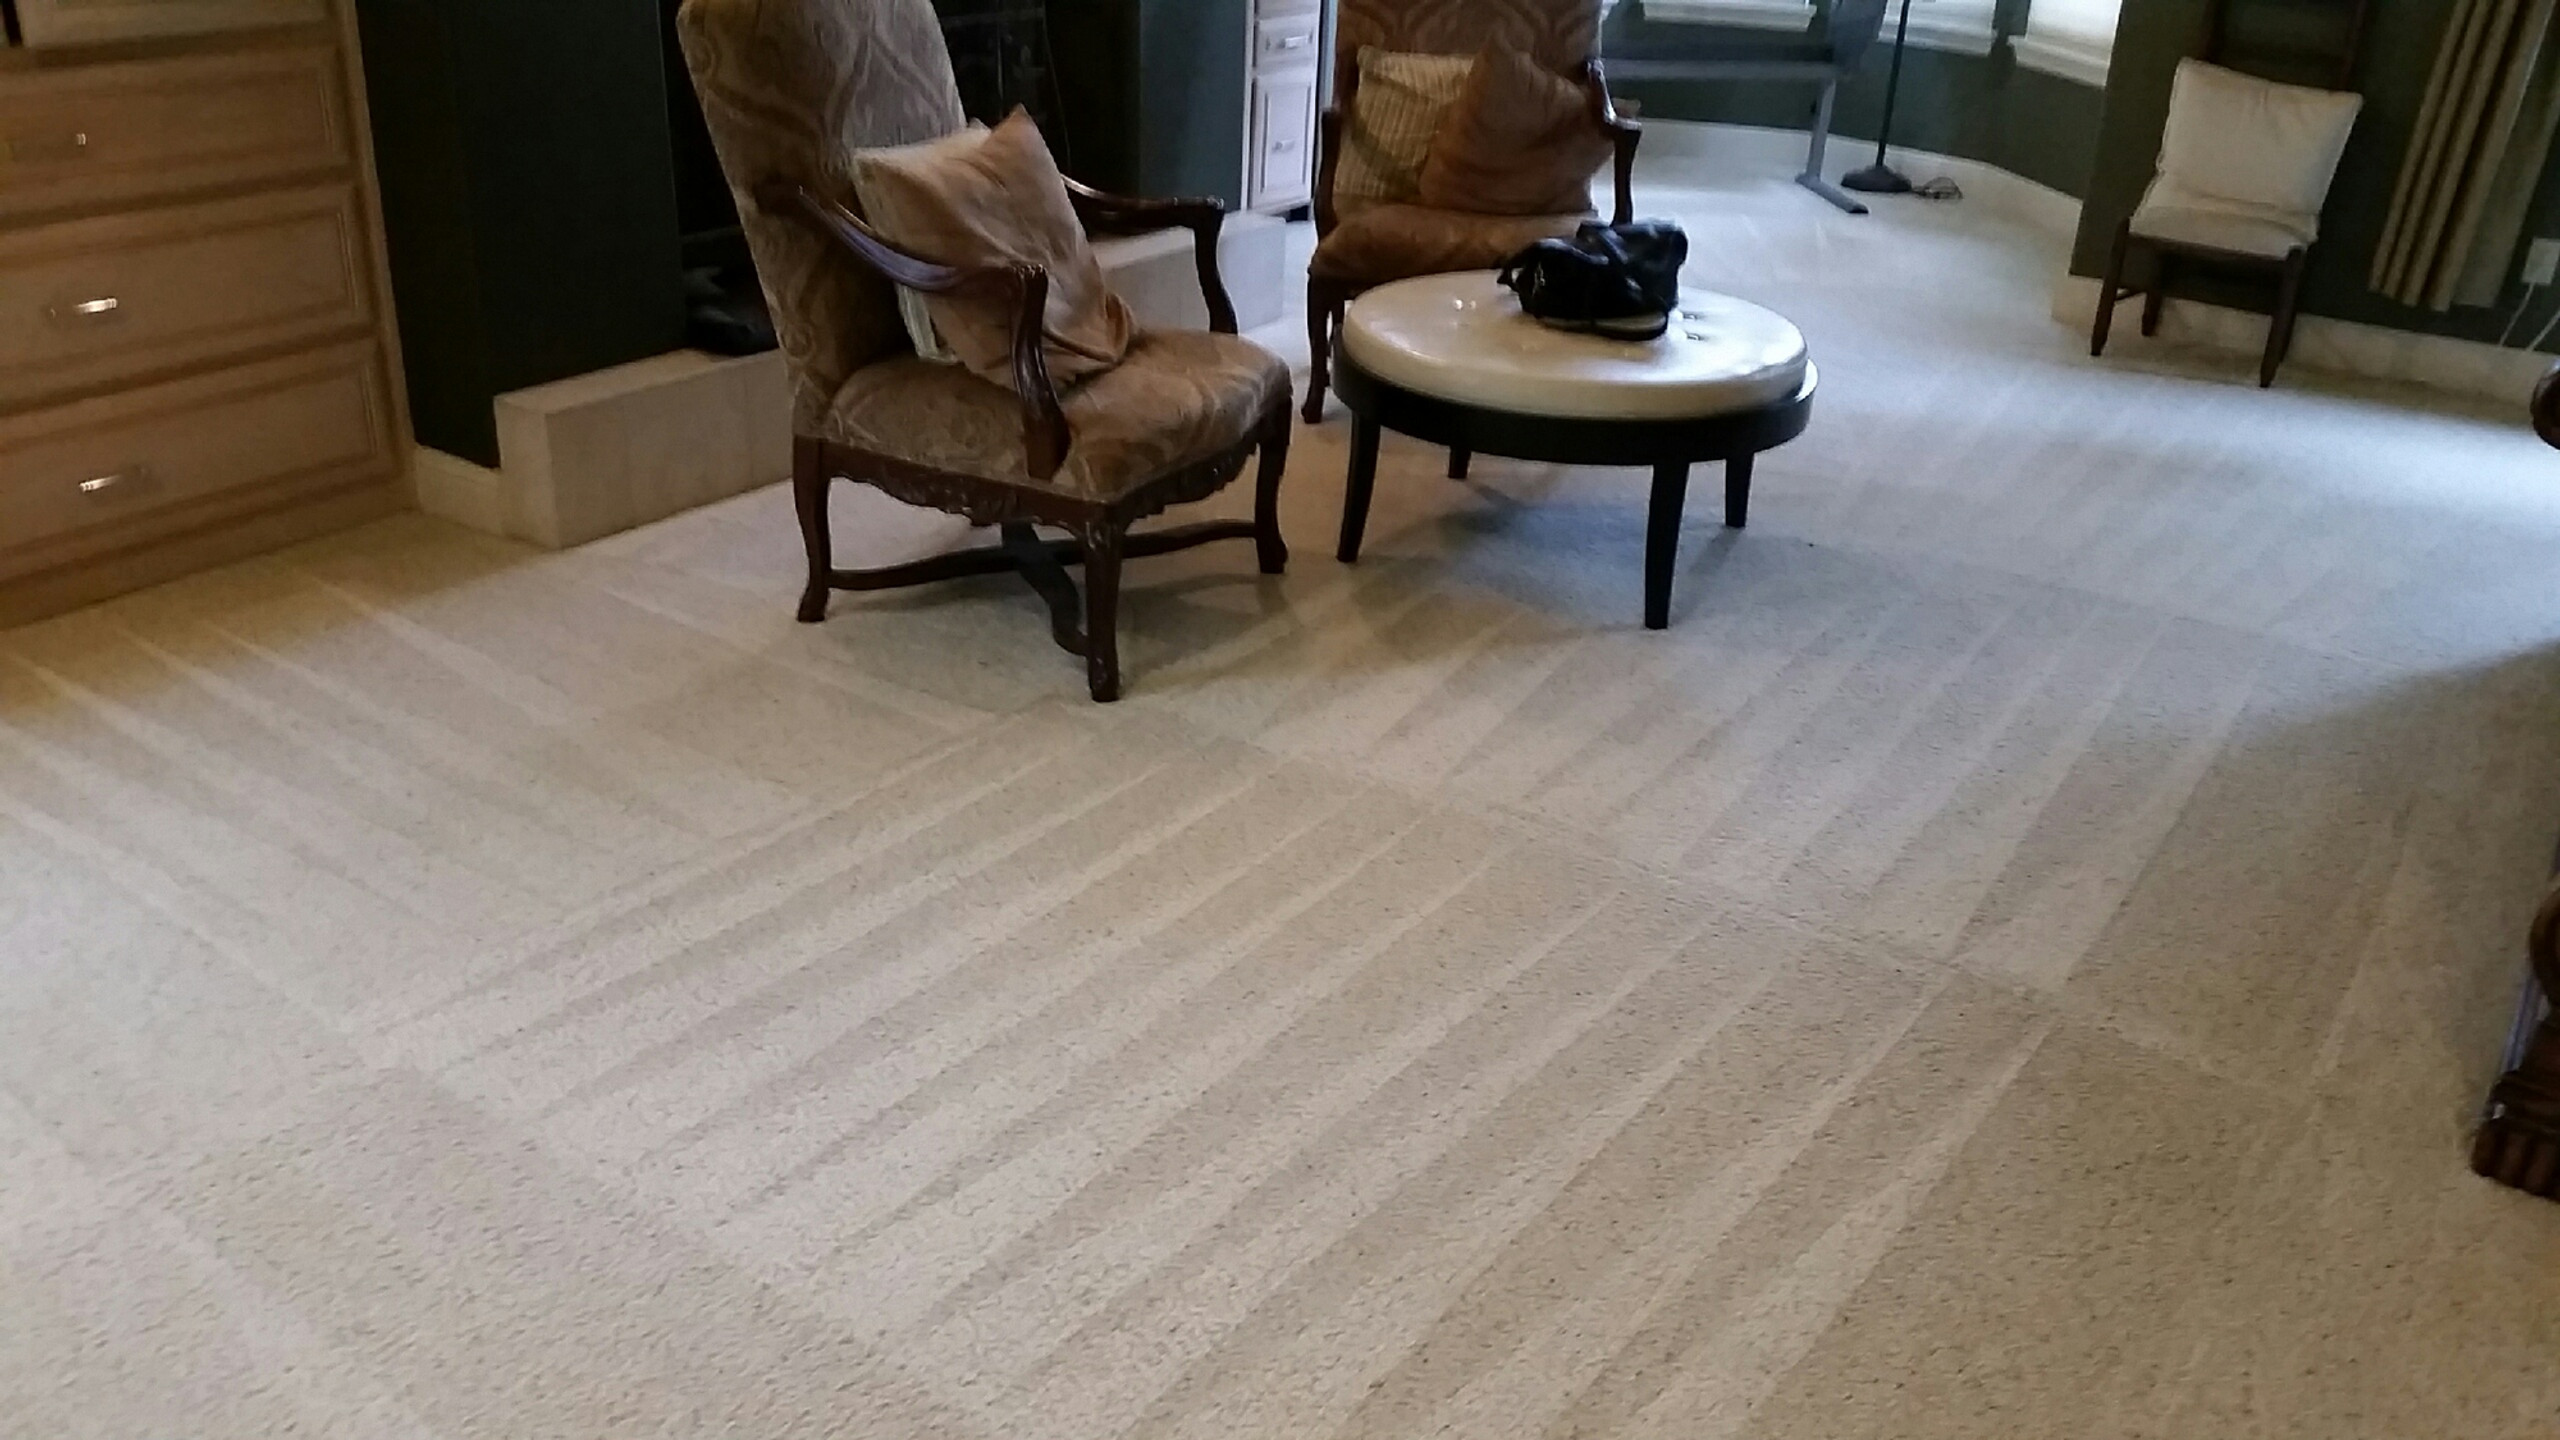 Carpet Cleaning - Level One